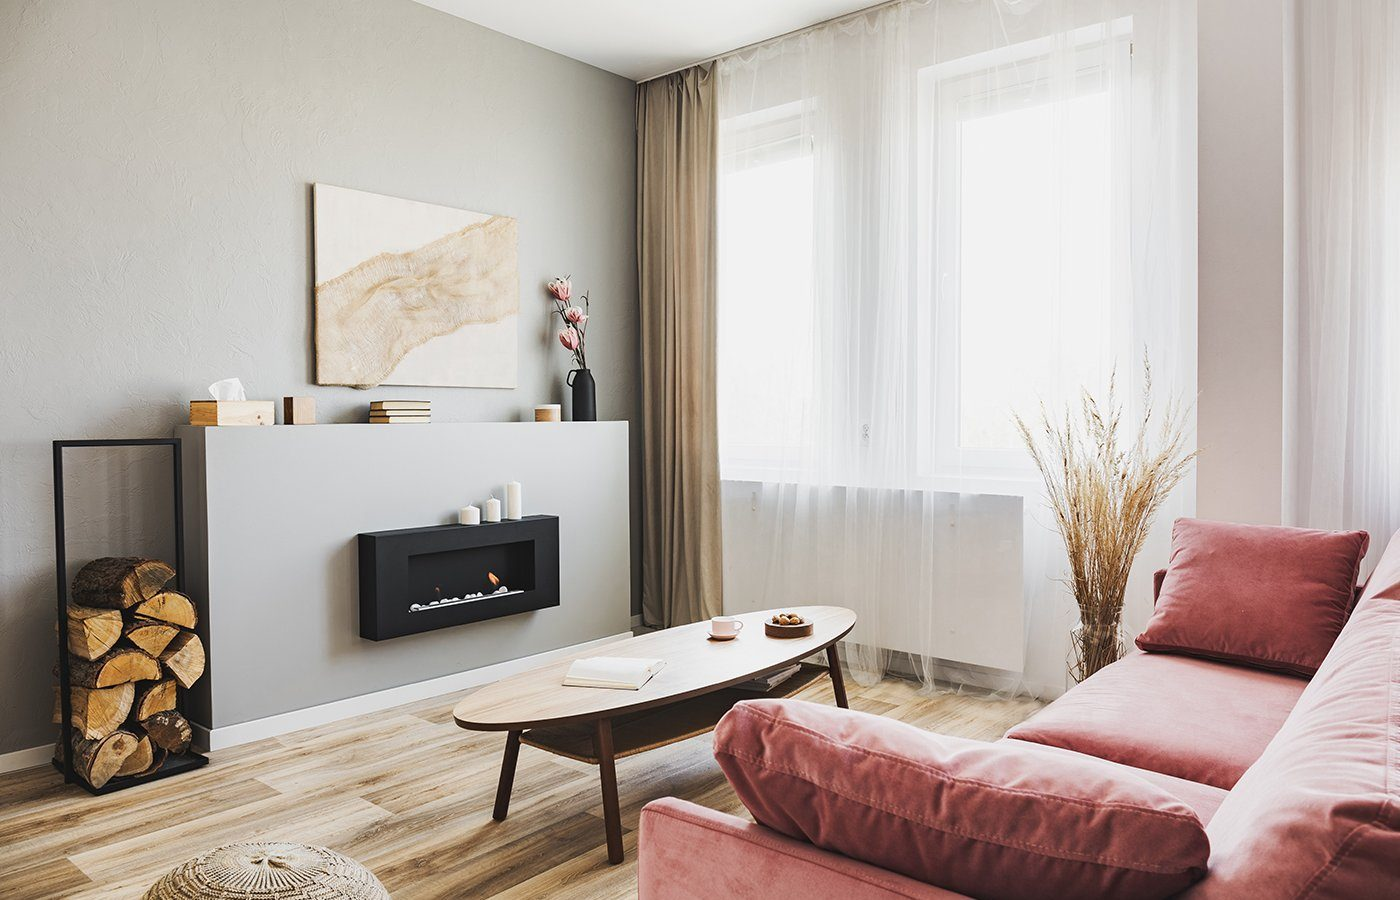 Stylish living room interior with pastel pink sofa, wooden coffe